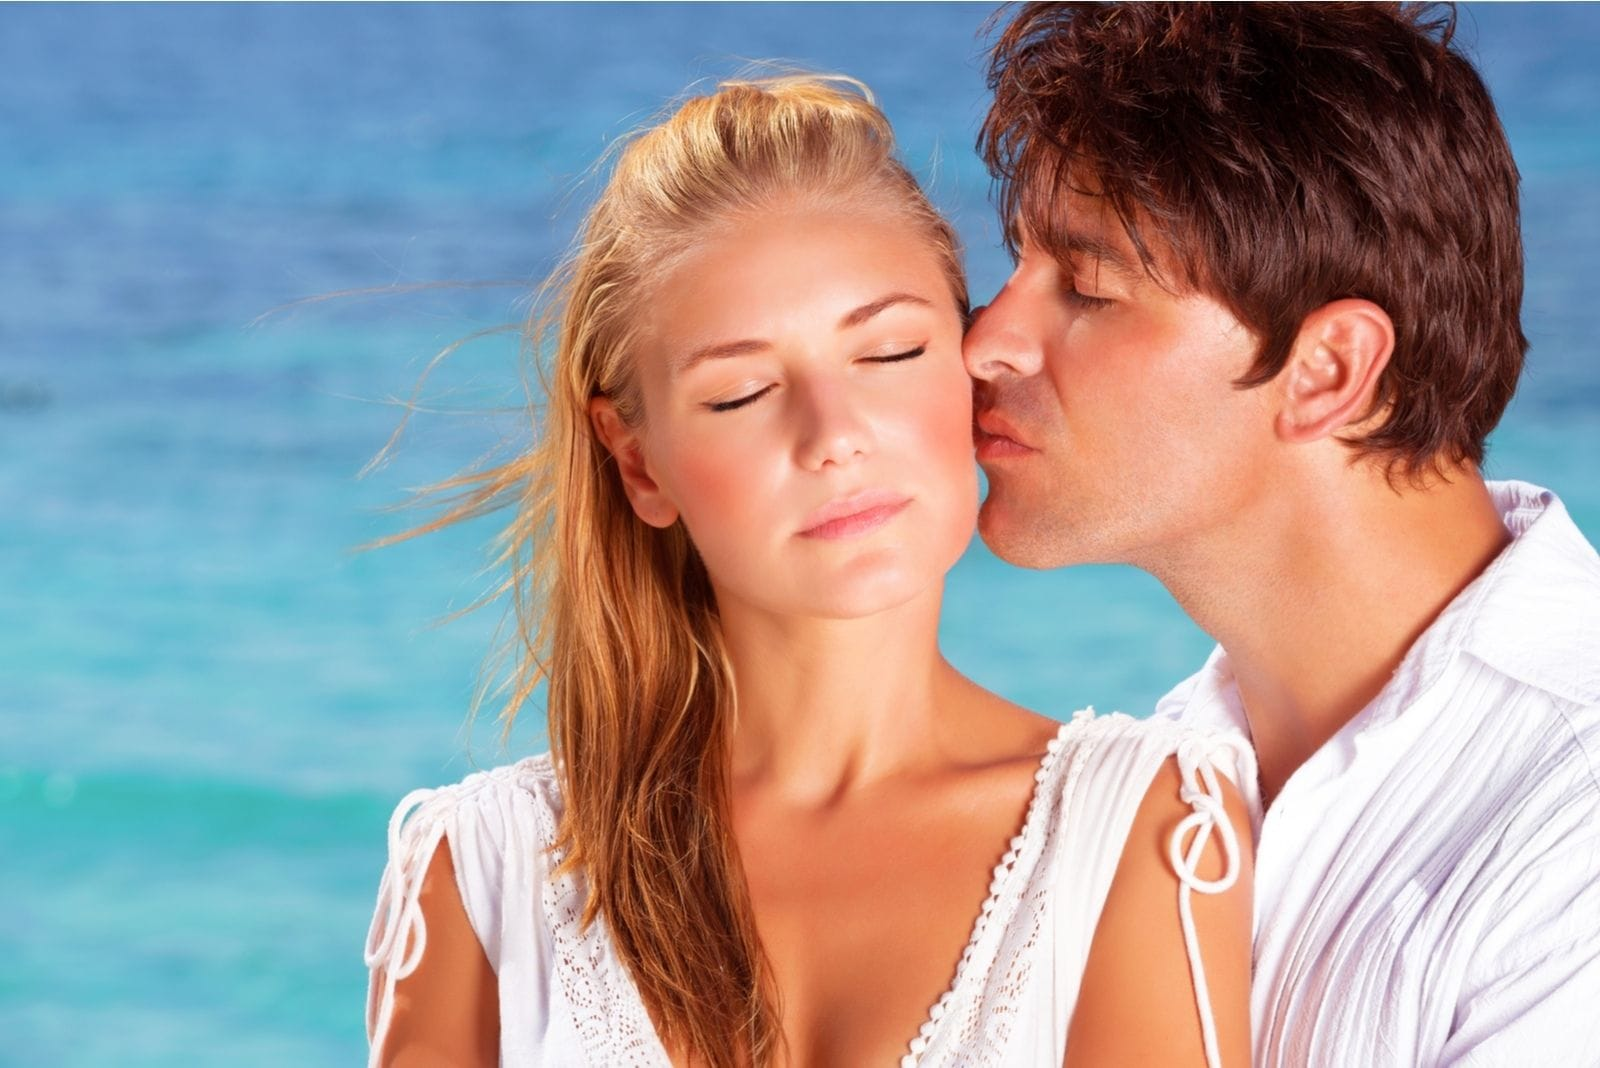 sweet man kissing and hugging a woman standing in the beach